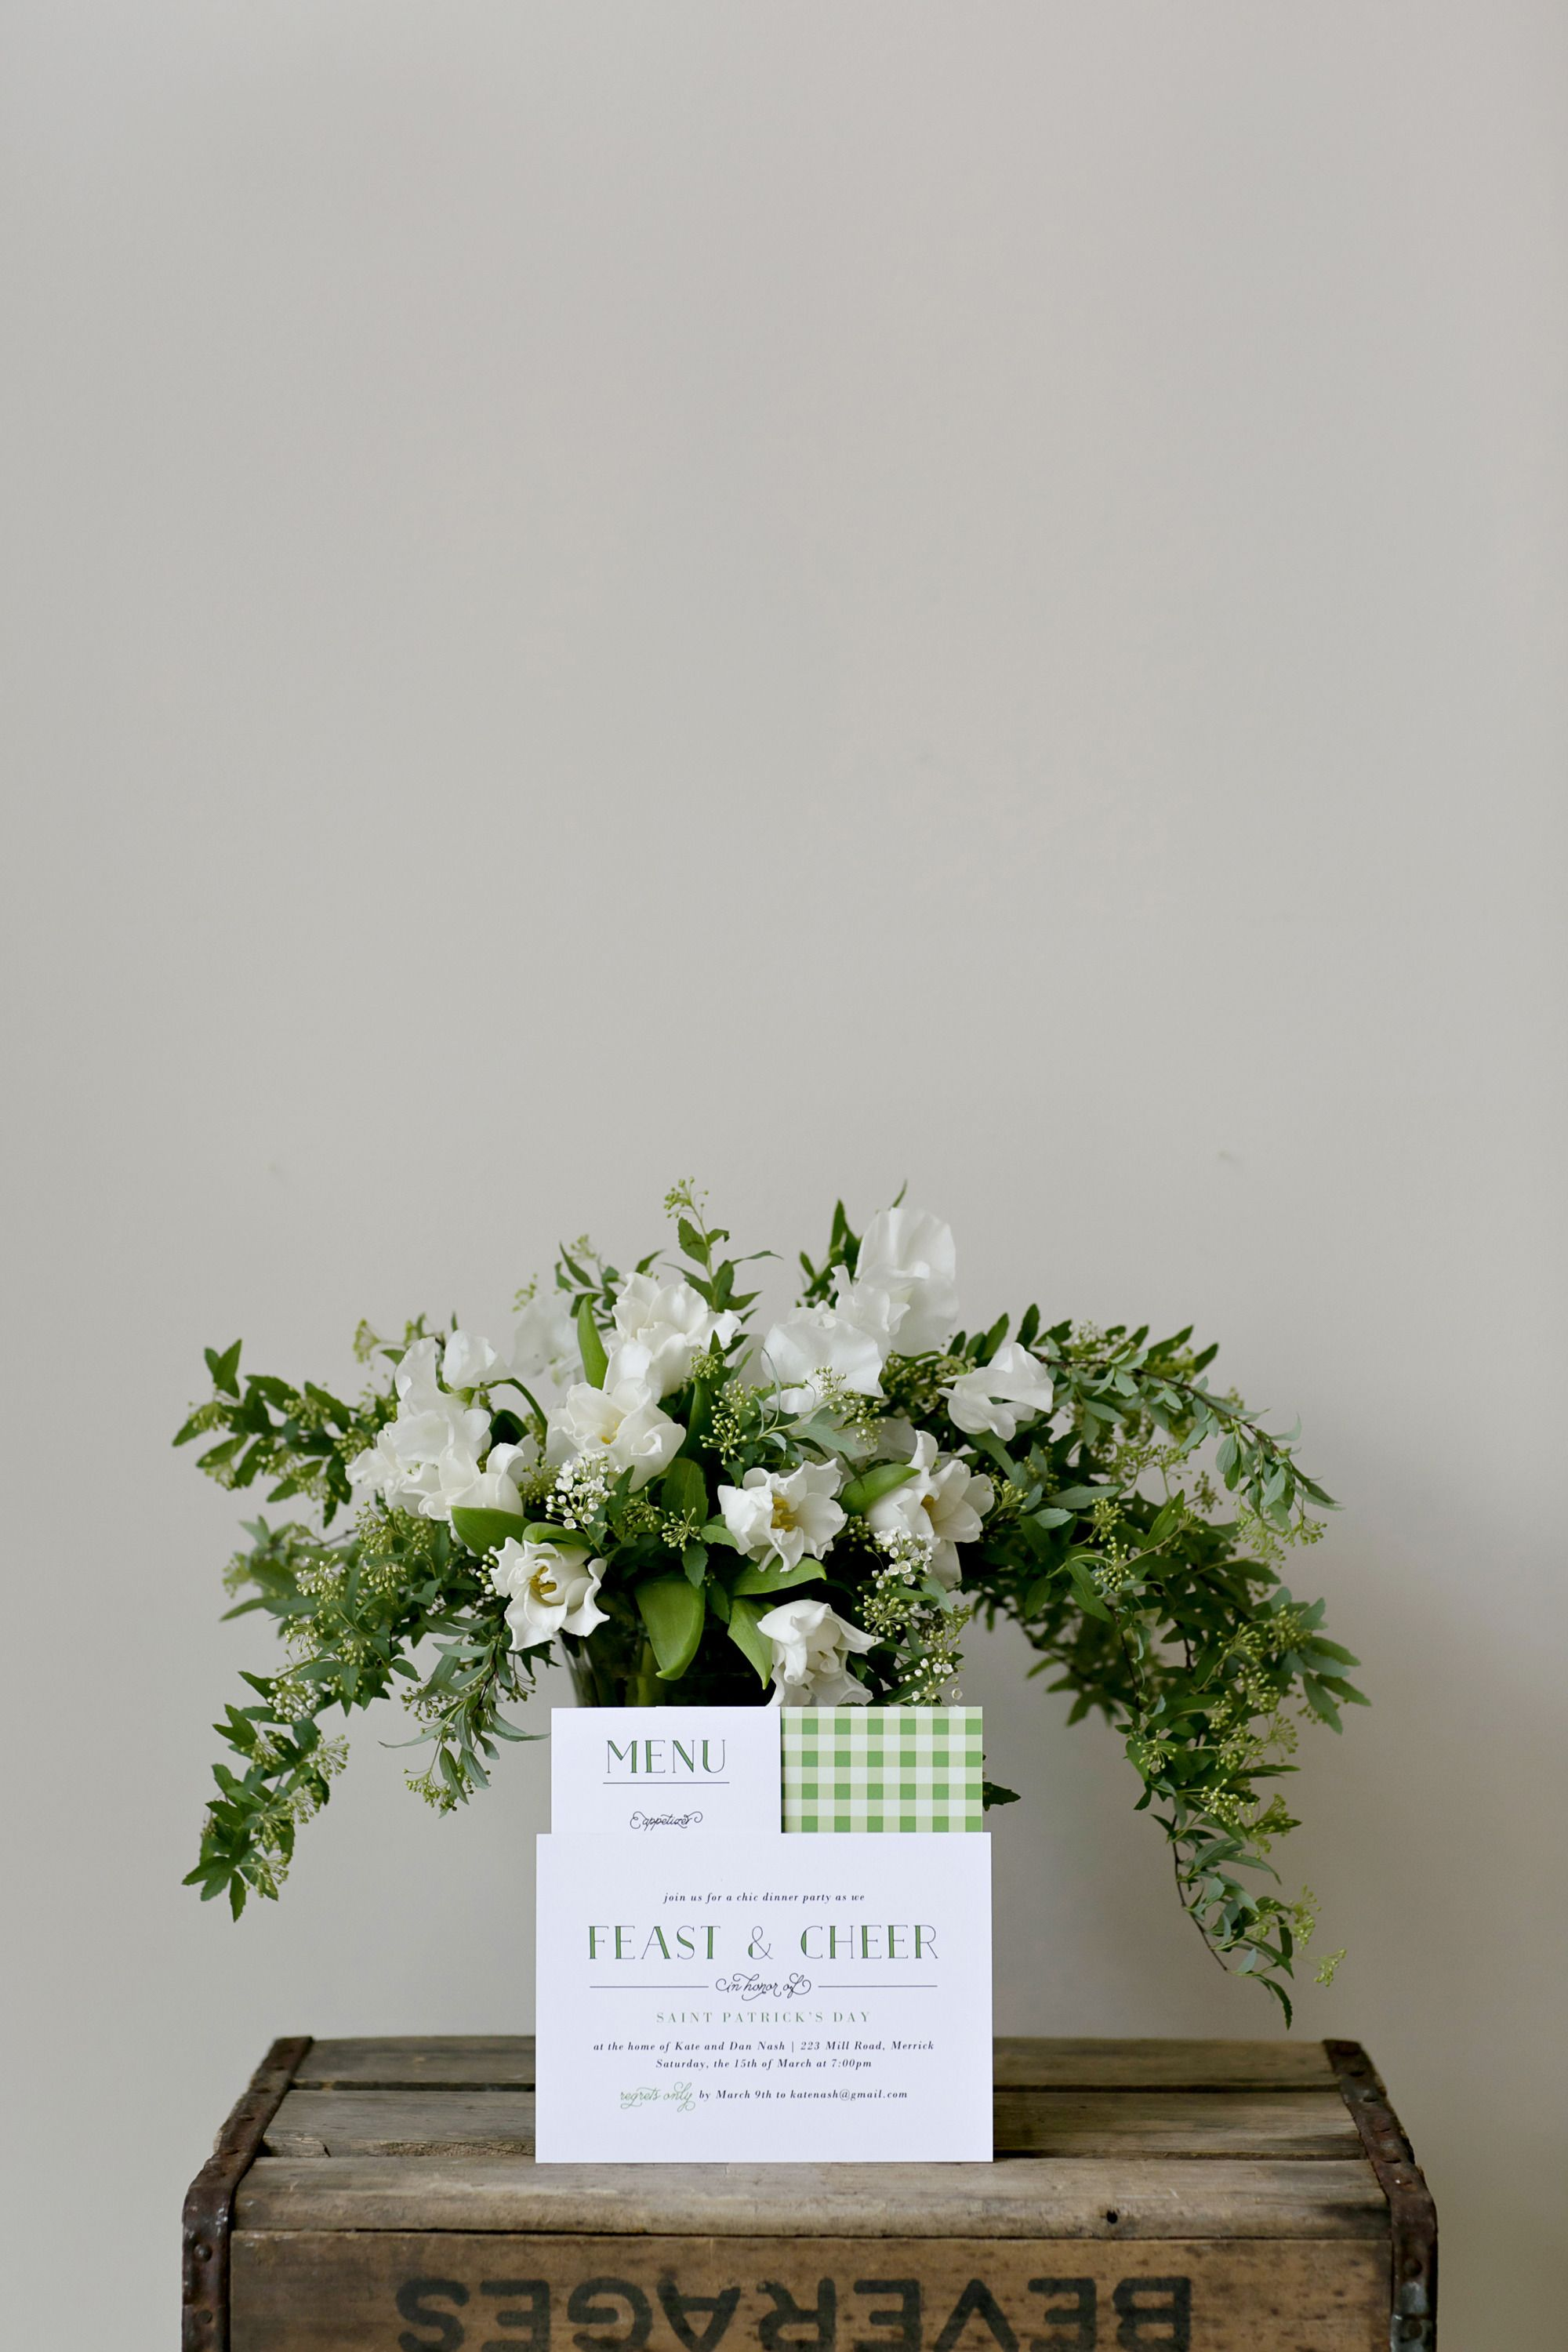 #hellebores, #centerpiece, #invitations, #floral-arrangement  Photography: Jen Lynne Photography - jenlynnephotography.net  Read More: http://www.stylemepretty.com/living/2014/03/17/irish-soda-bread/